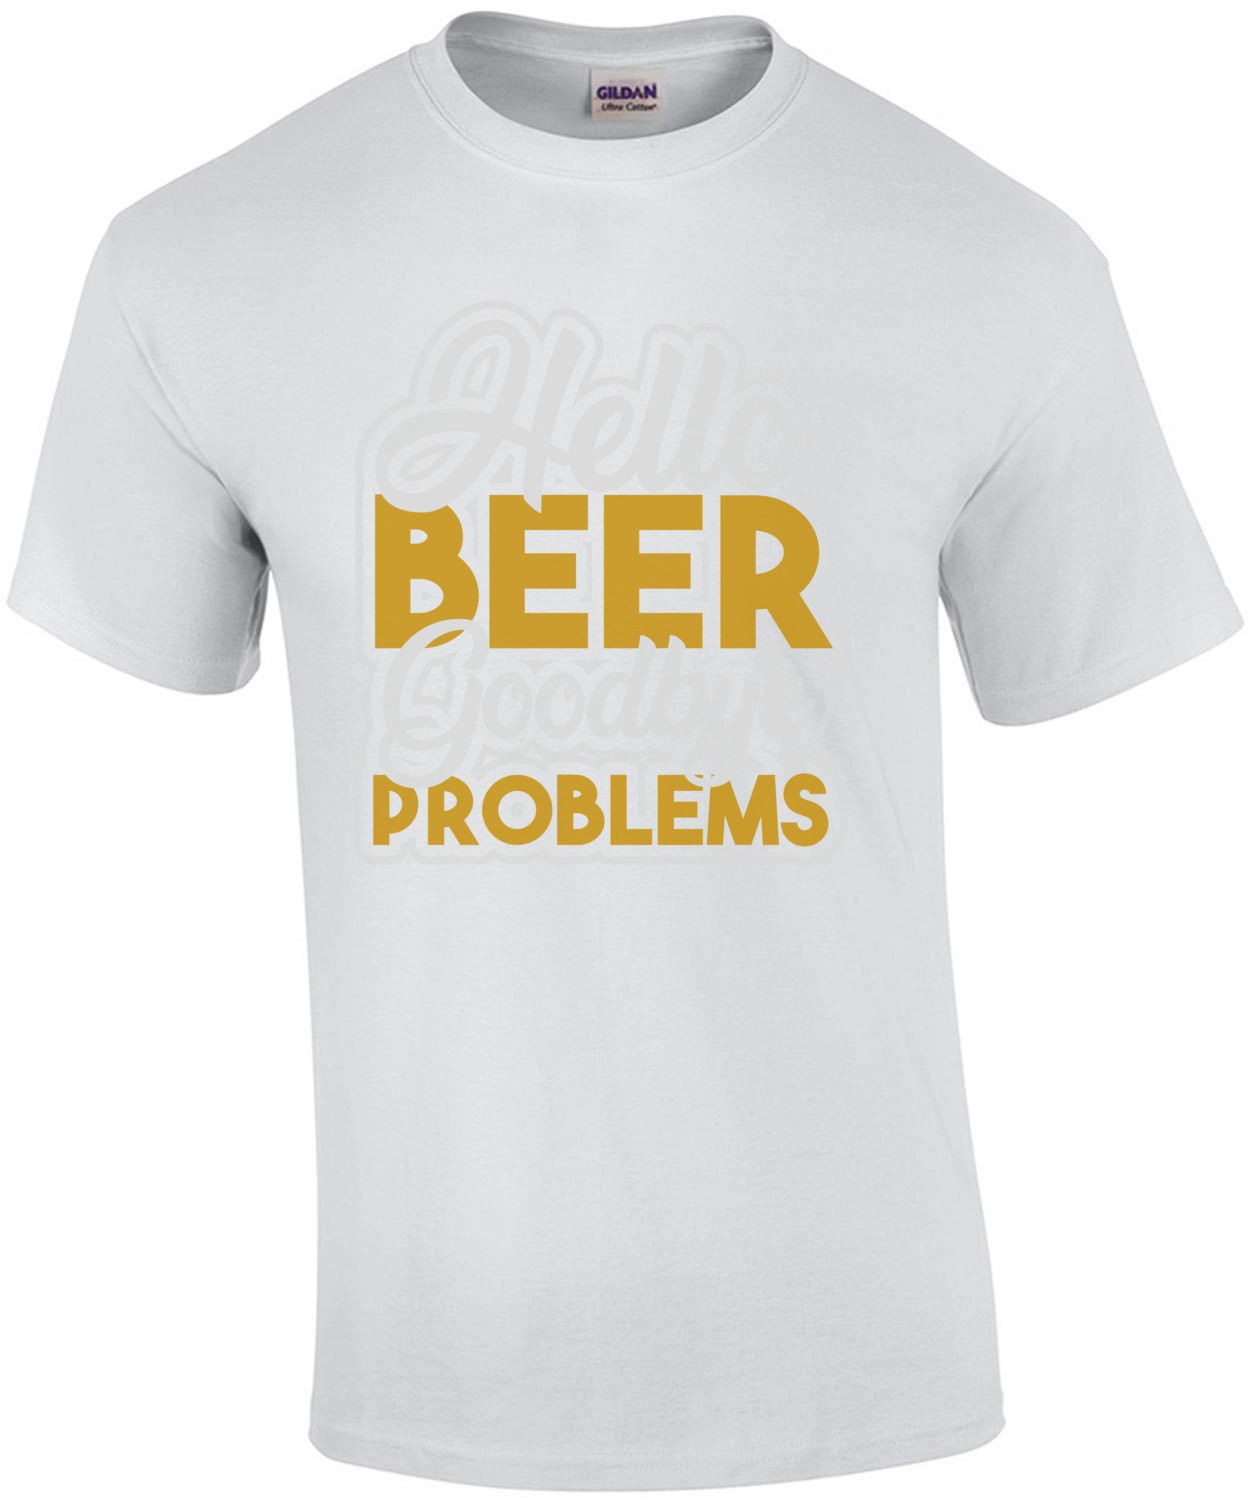 Hello Beer - Goodbye problems - funny beer t-shirt